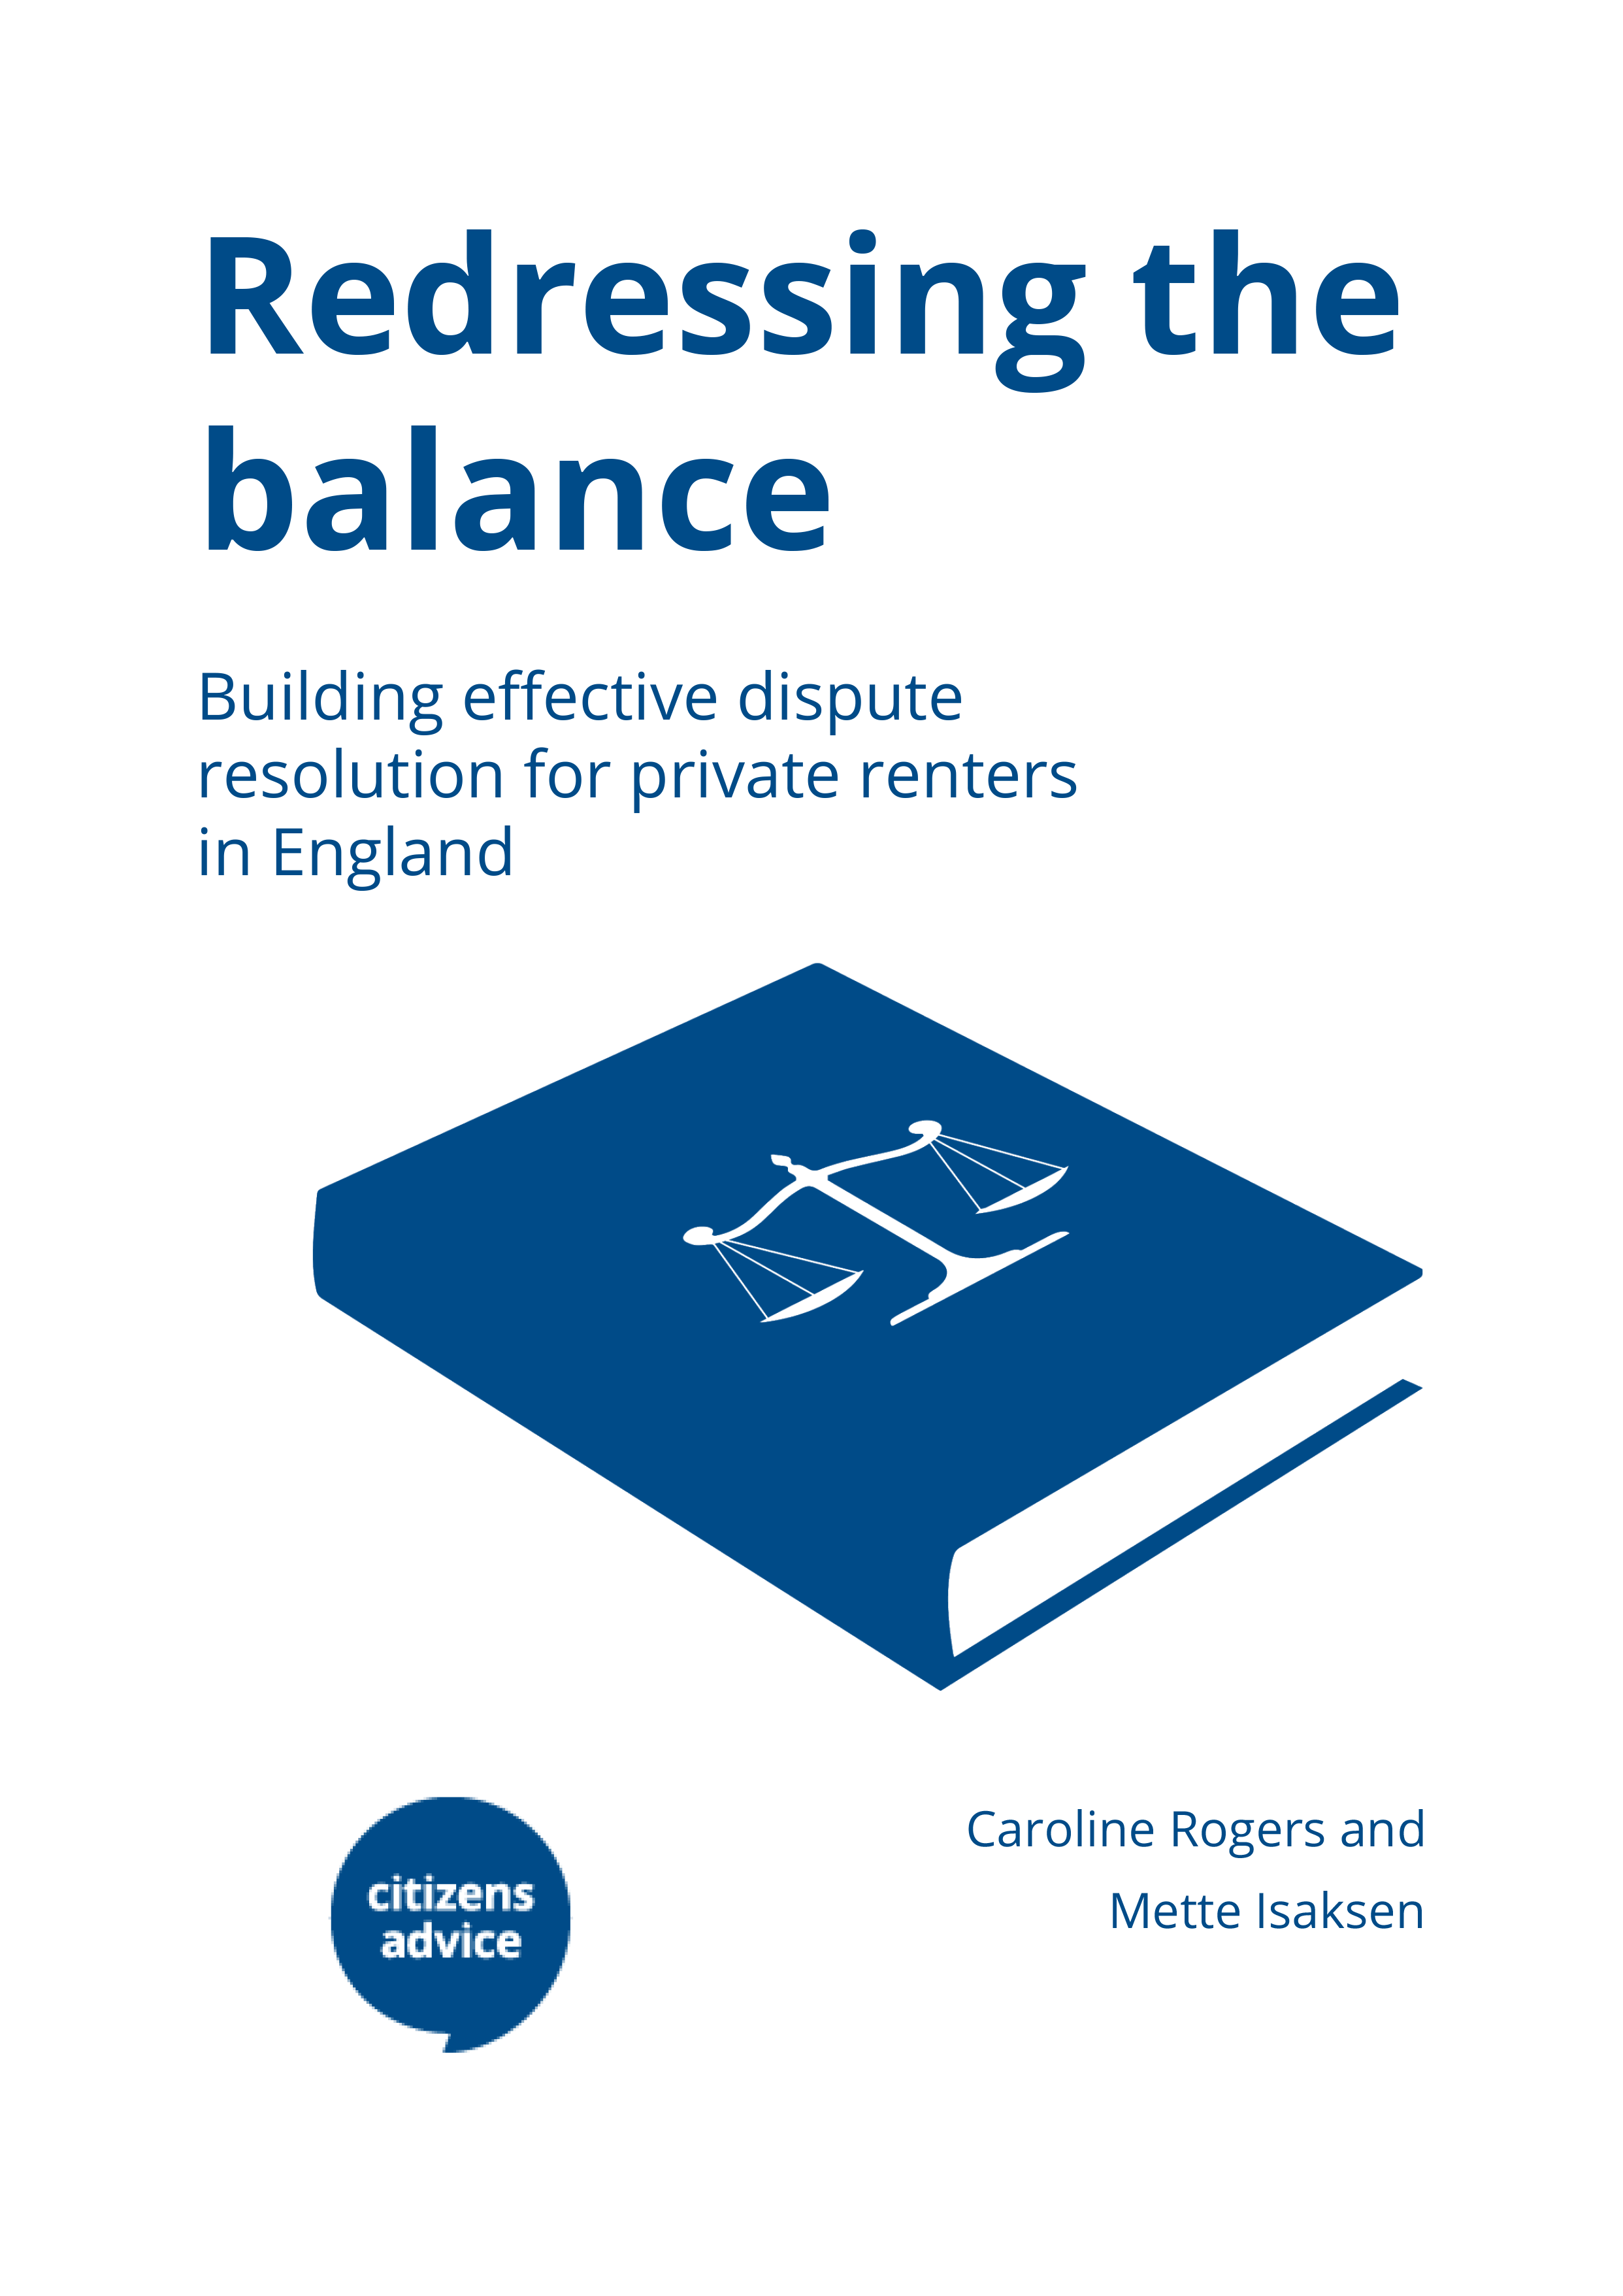 Redressing the balance report cover